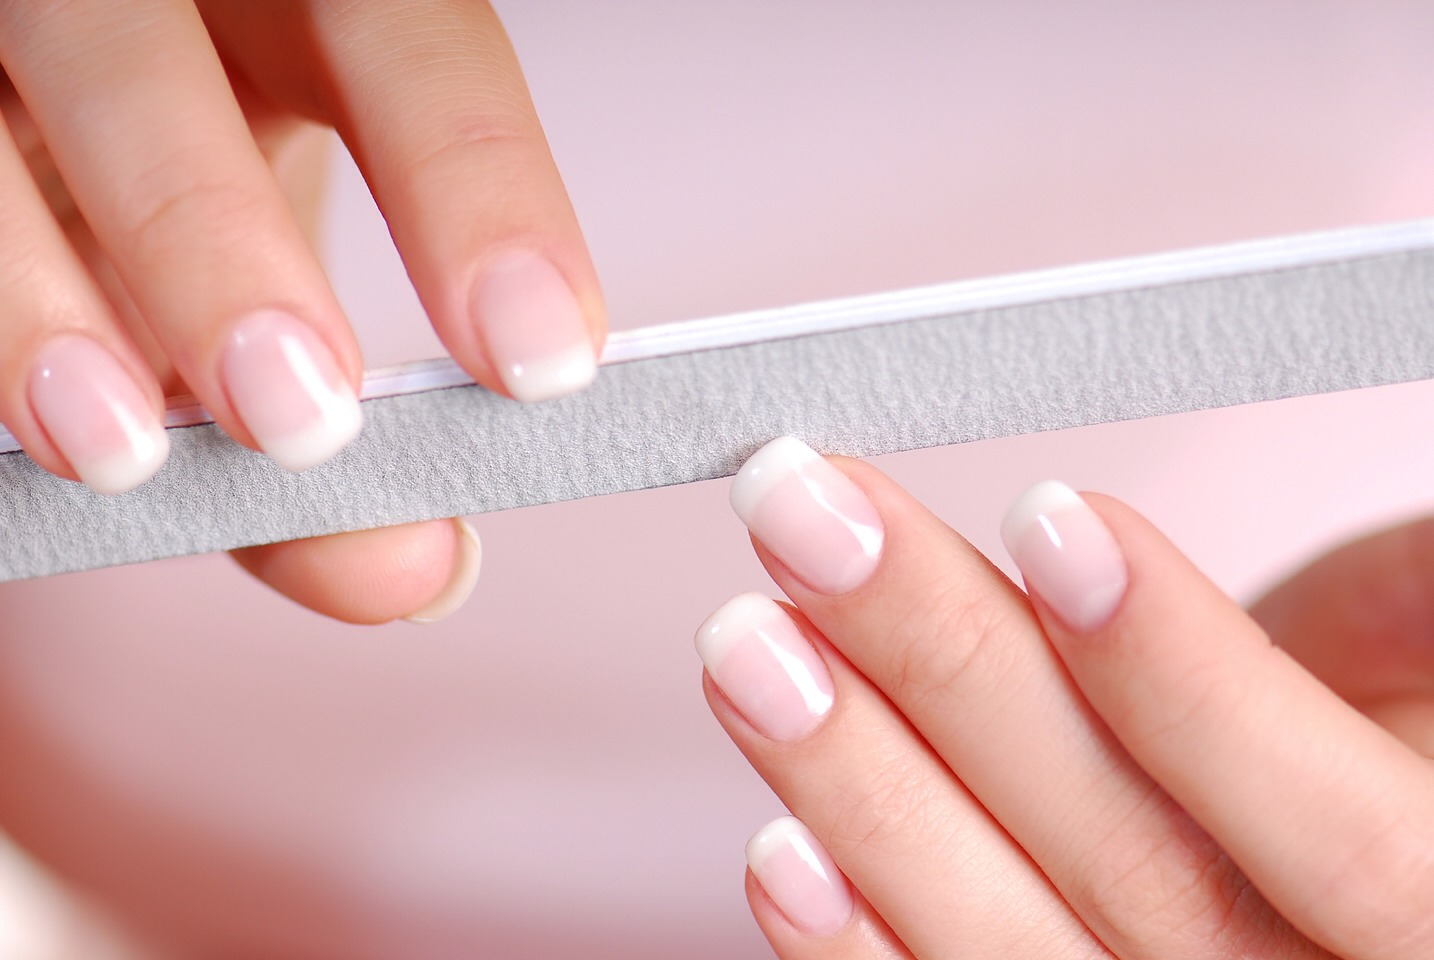 Put Vaseline around your nails to get aft cuticles and get ride of hang nails